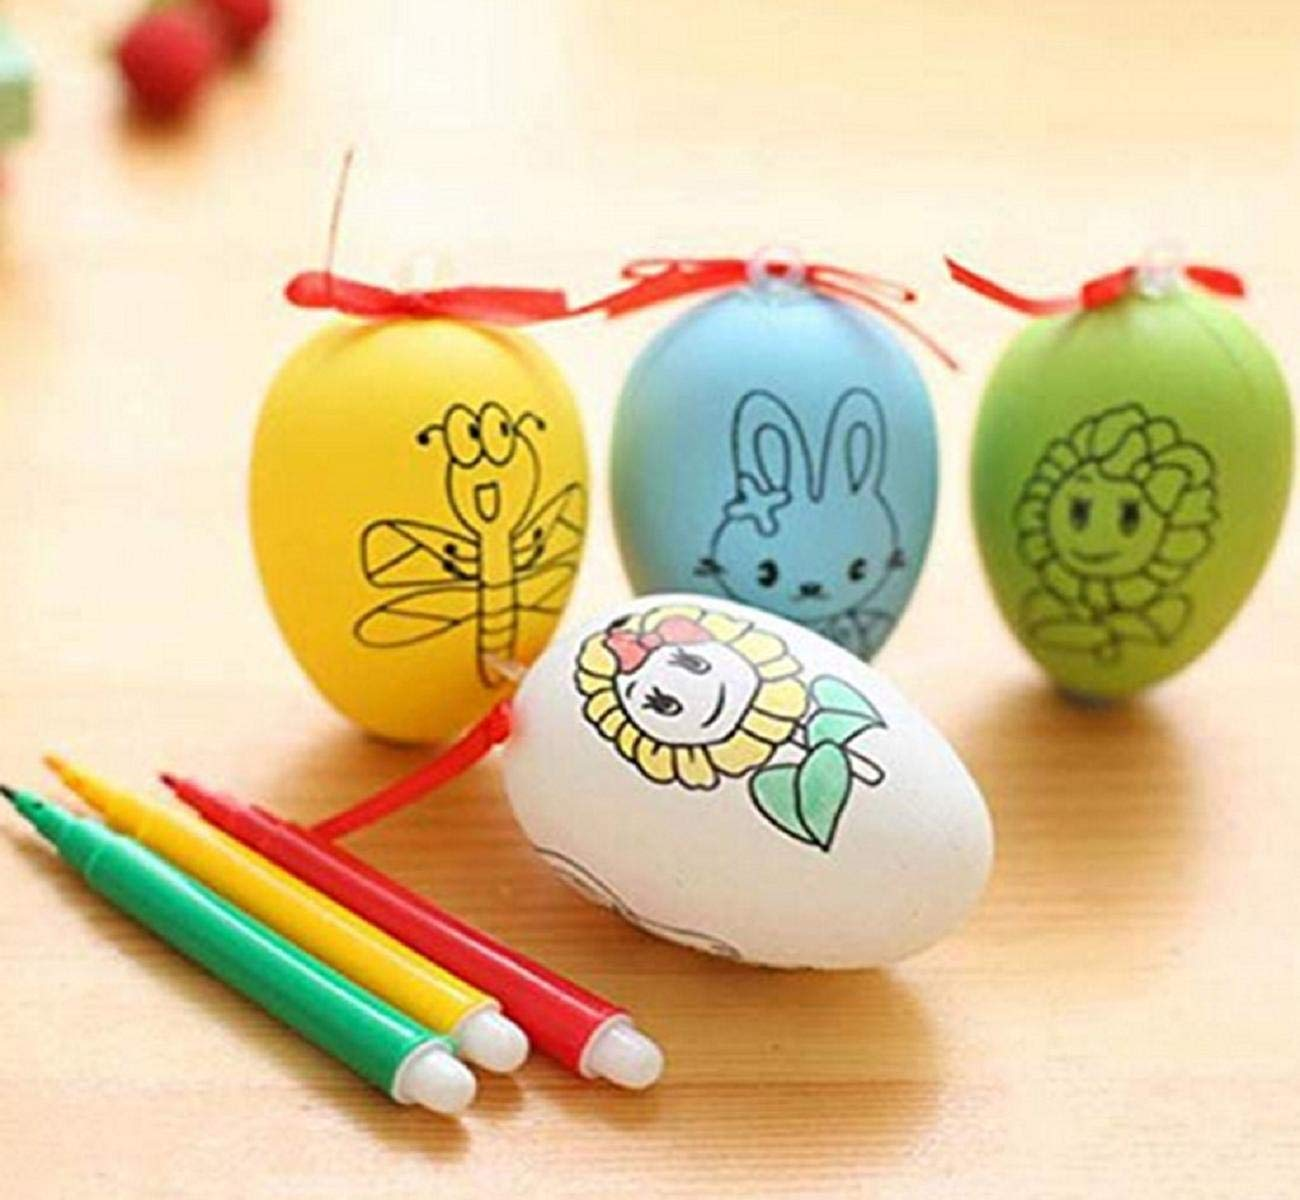 Guesthome hand painted eggs with colored pen easter eggs for childrens hand painted eggs diy doodle plastic eggs creative painting toy set for kid child